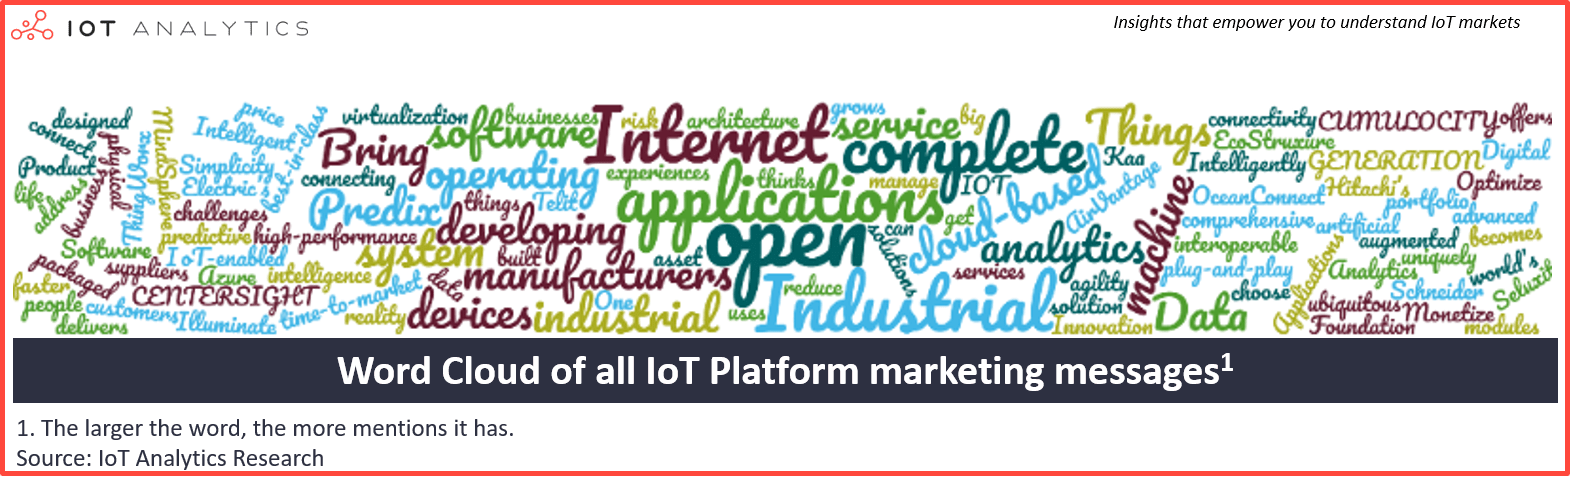 IoT Platform Vendor Marketing Message